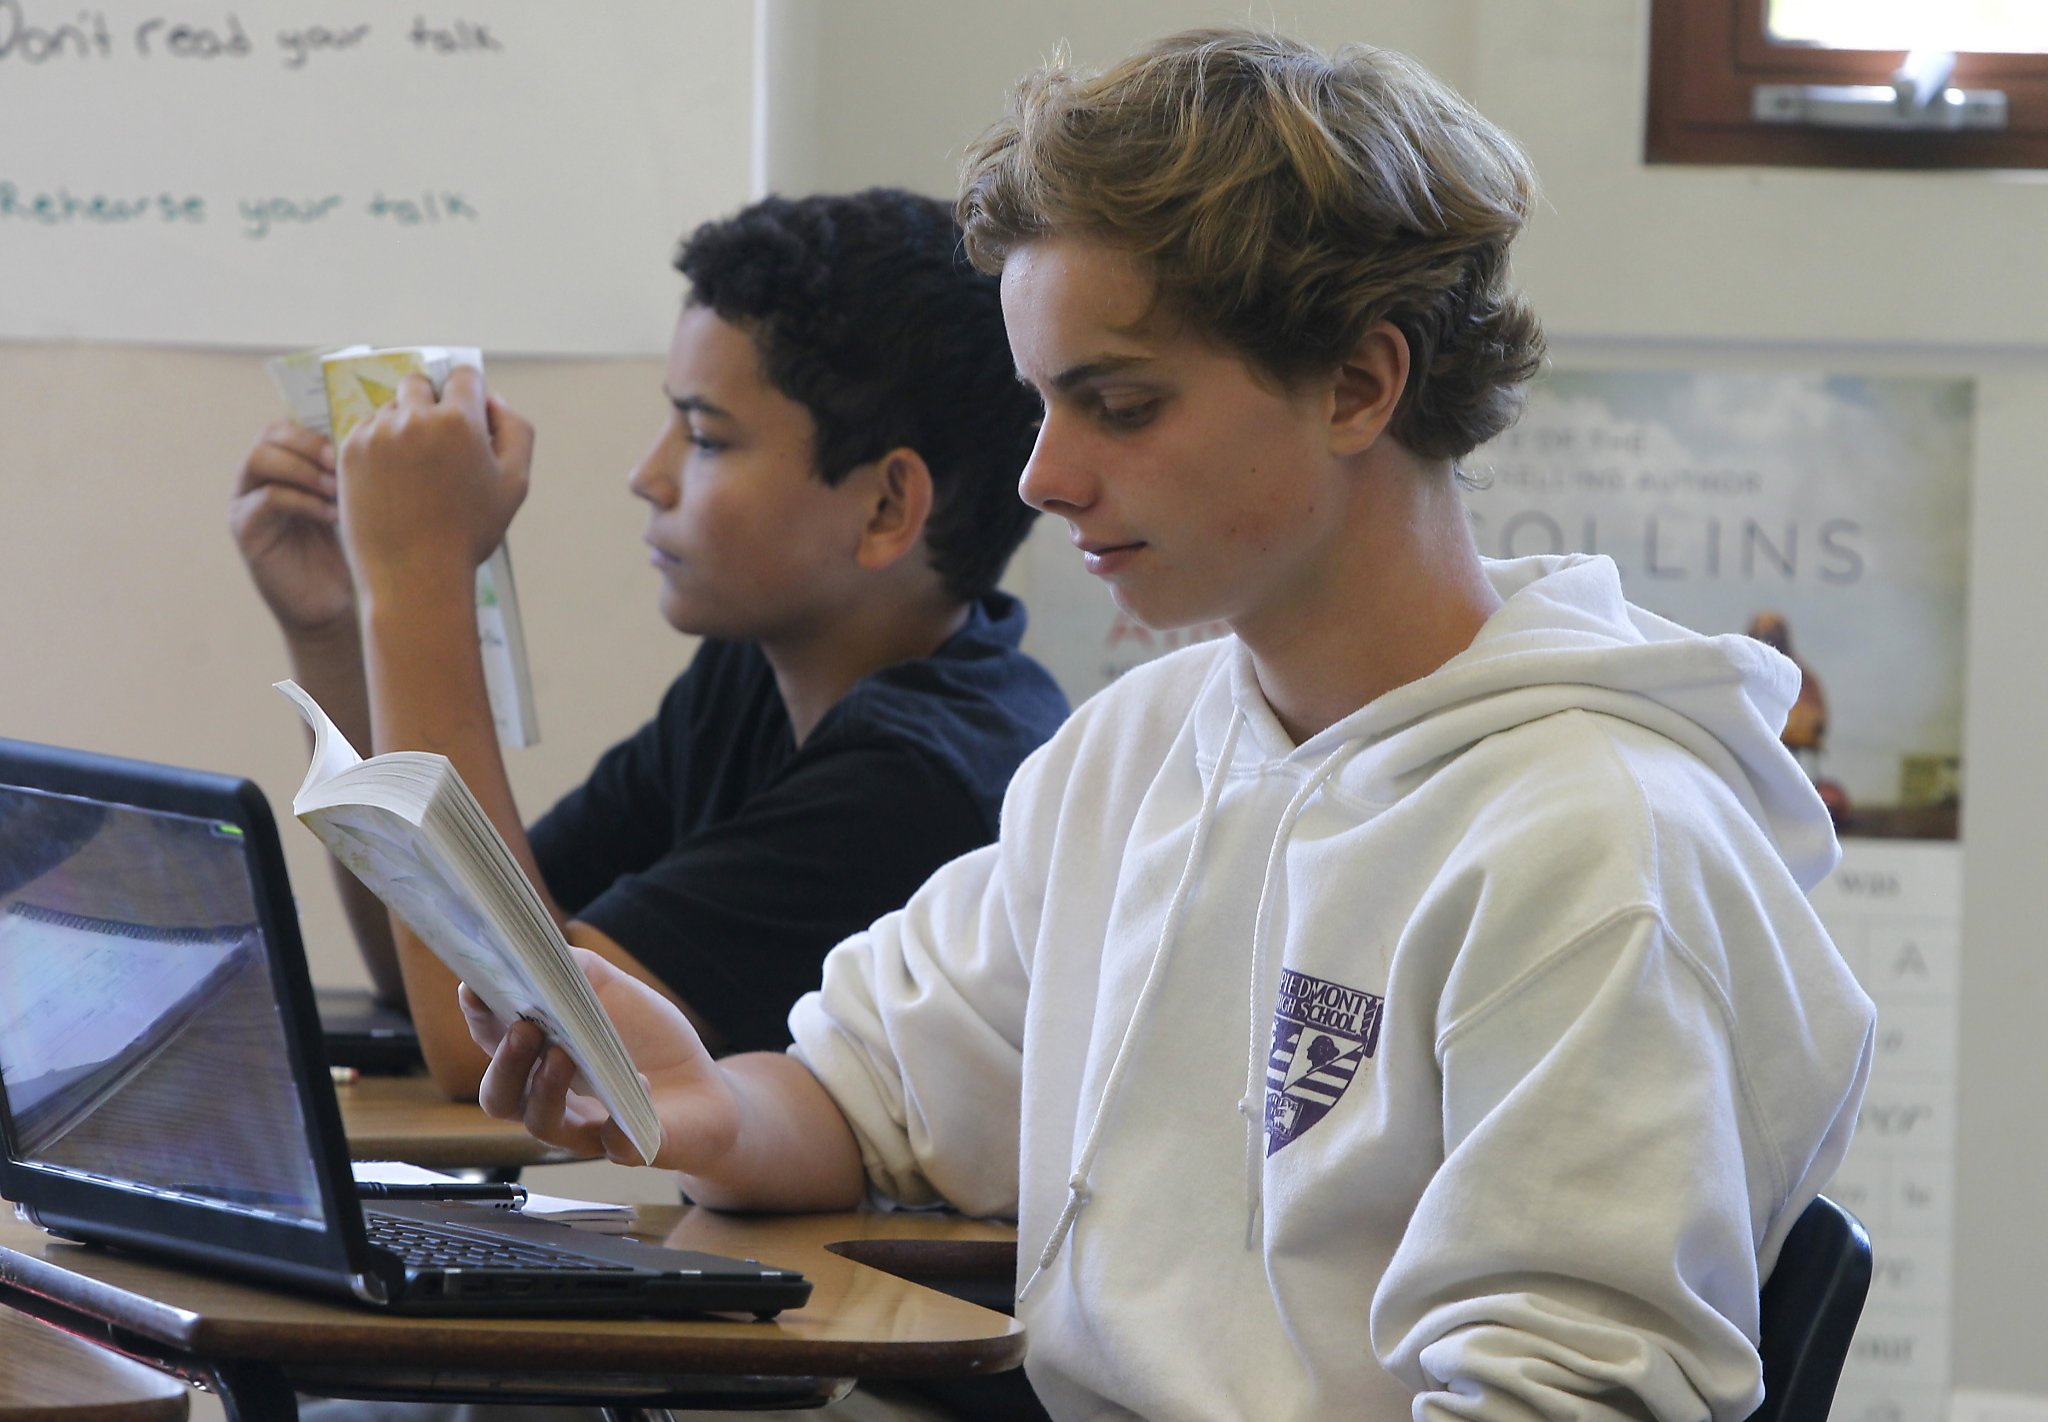 cranfills gap hispanic singles See a listing of public schools in cranfills gap independent school district see school trends, attendance boundaries, rankings, test scores and more.